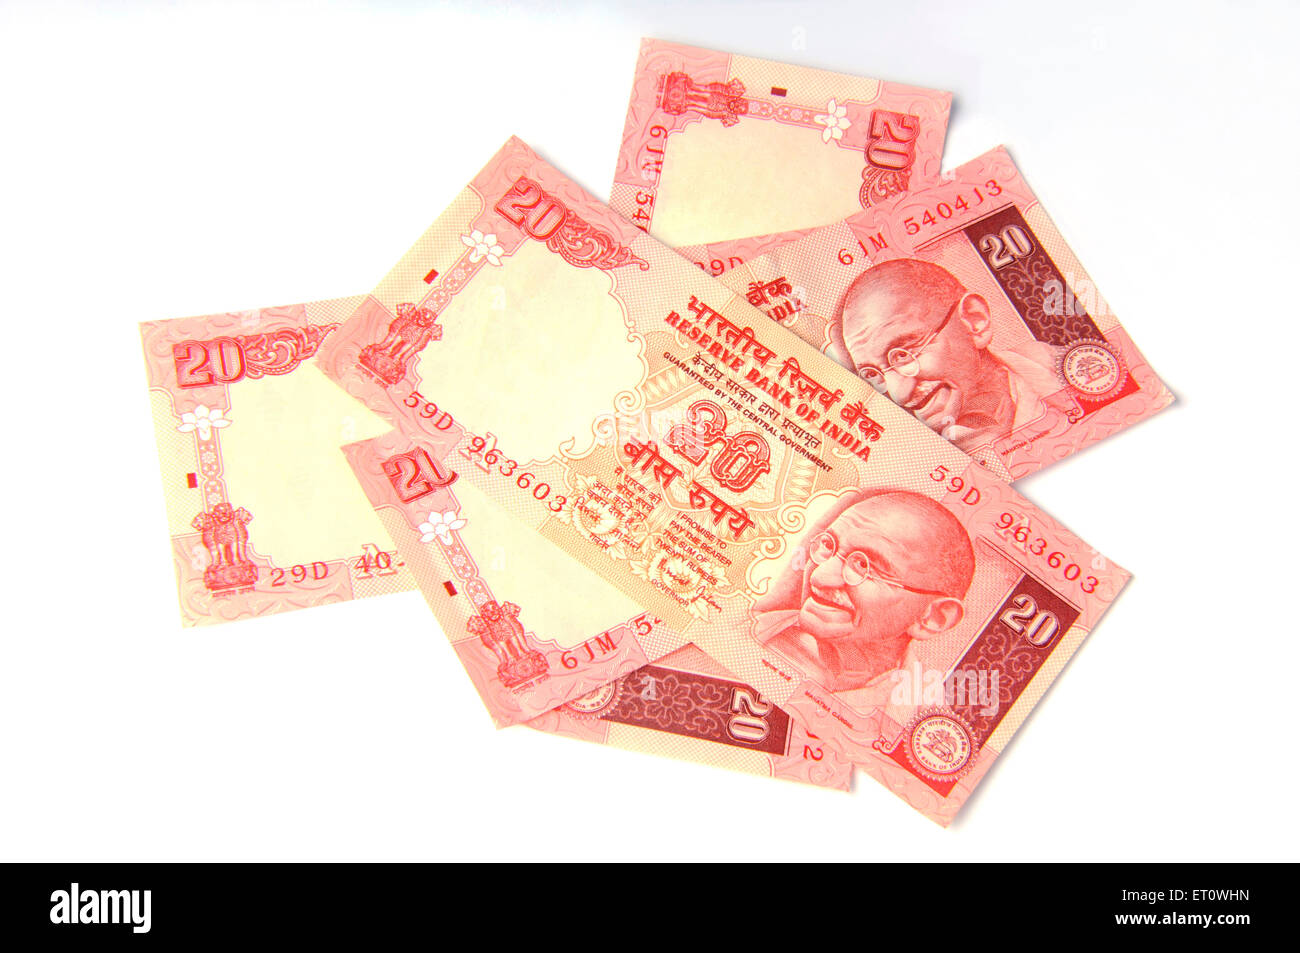 concept of Indian Currency twenty rupee note - Stock Image